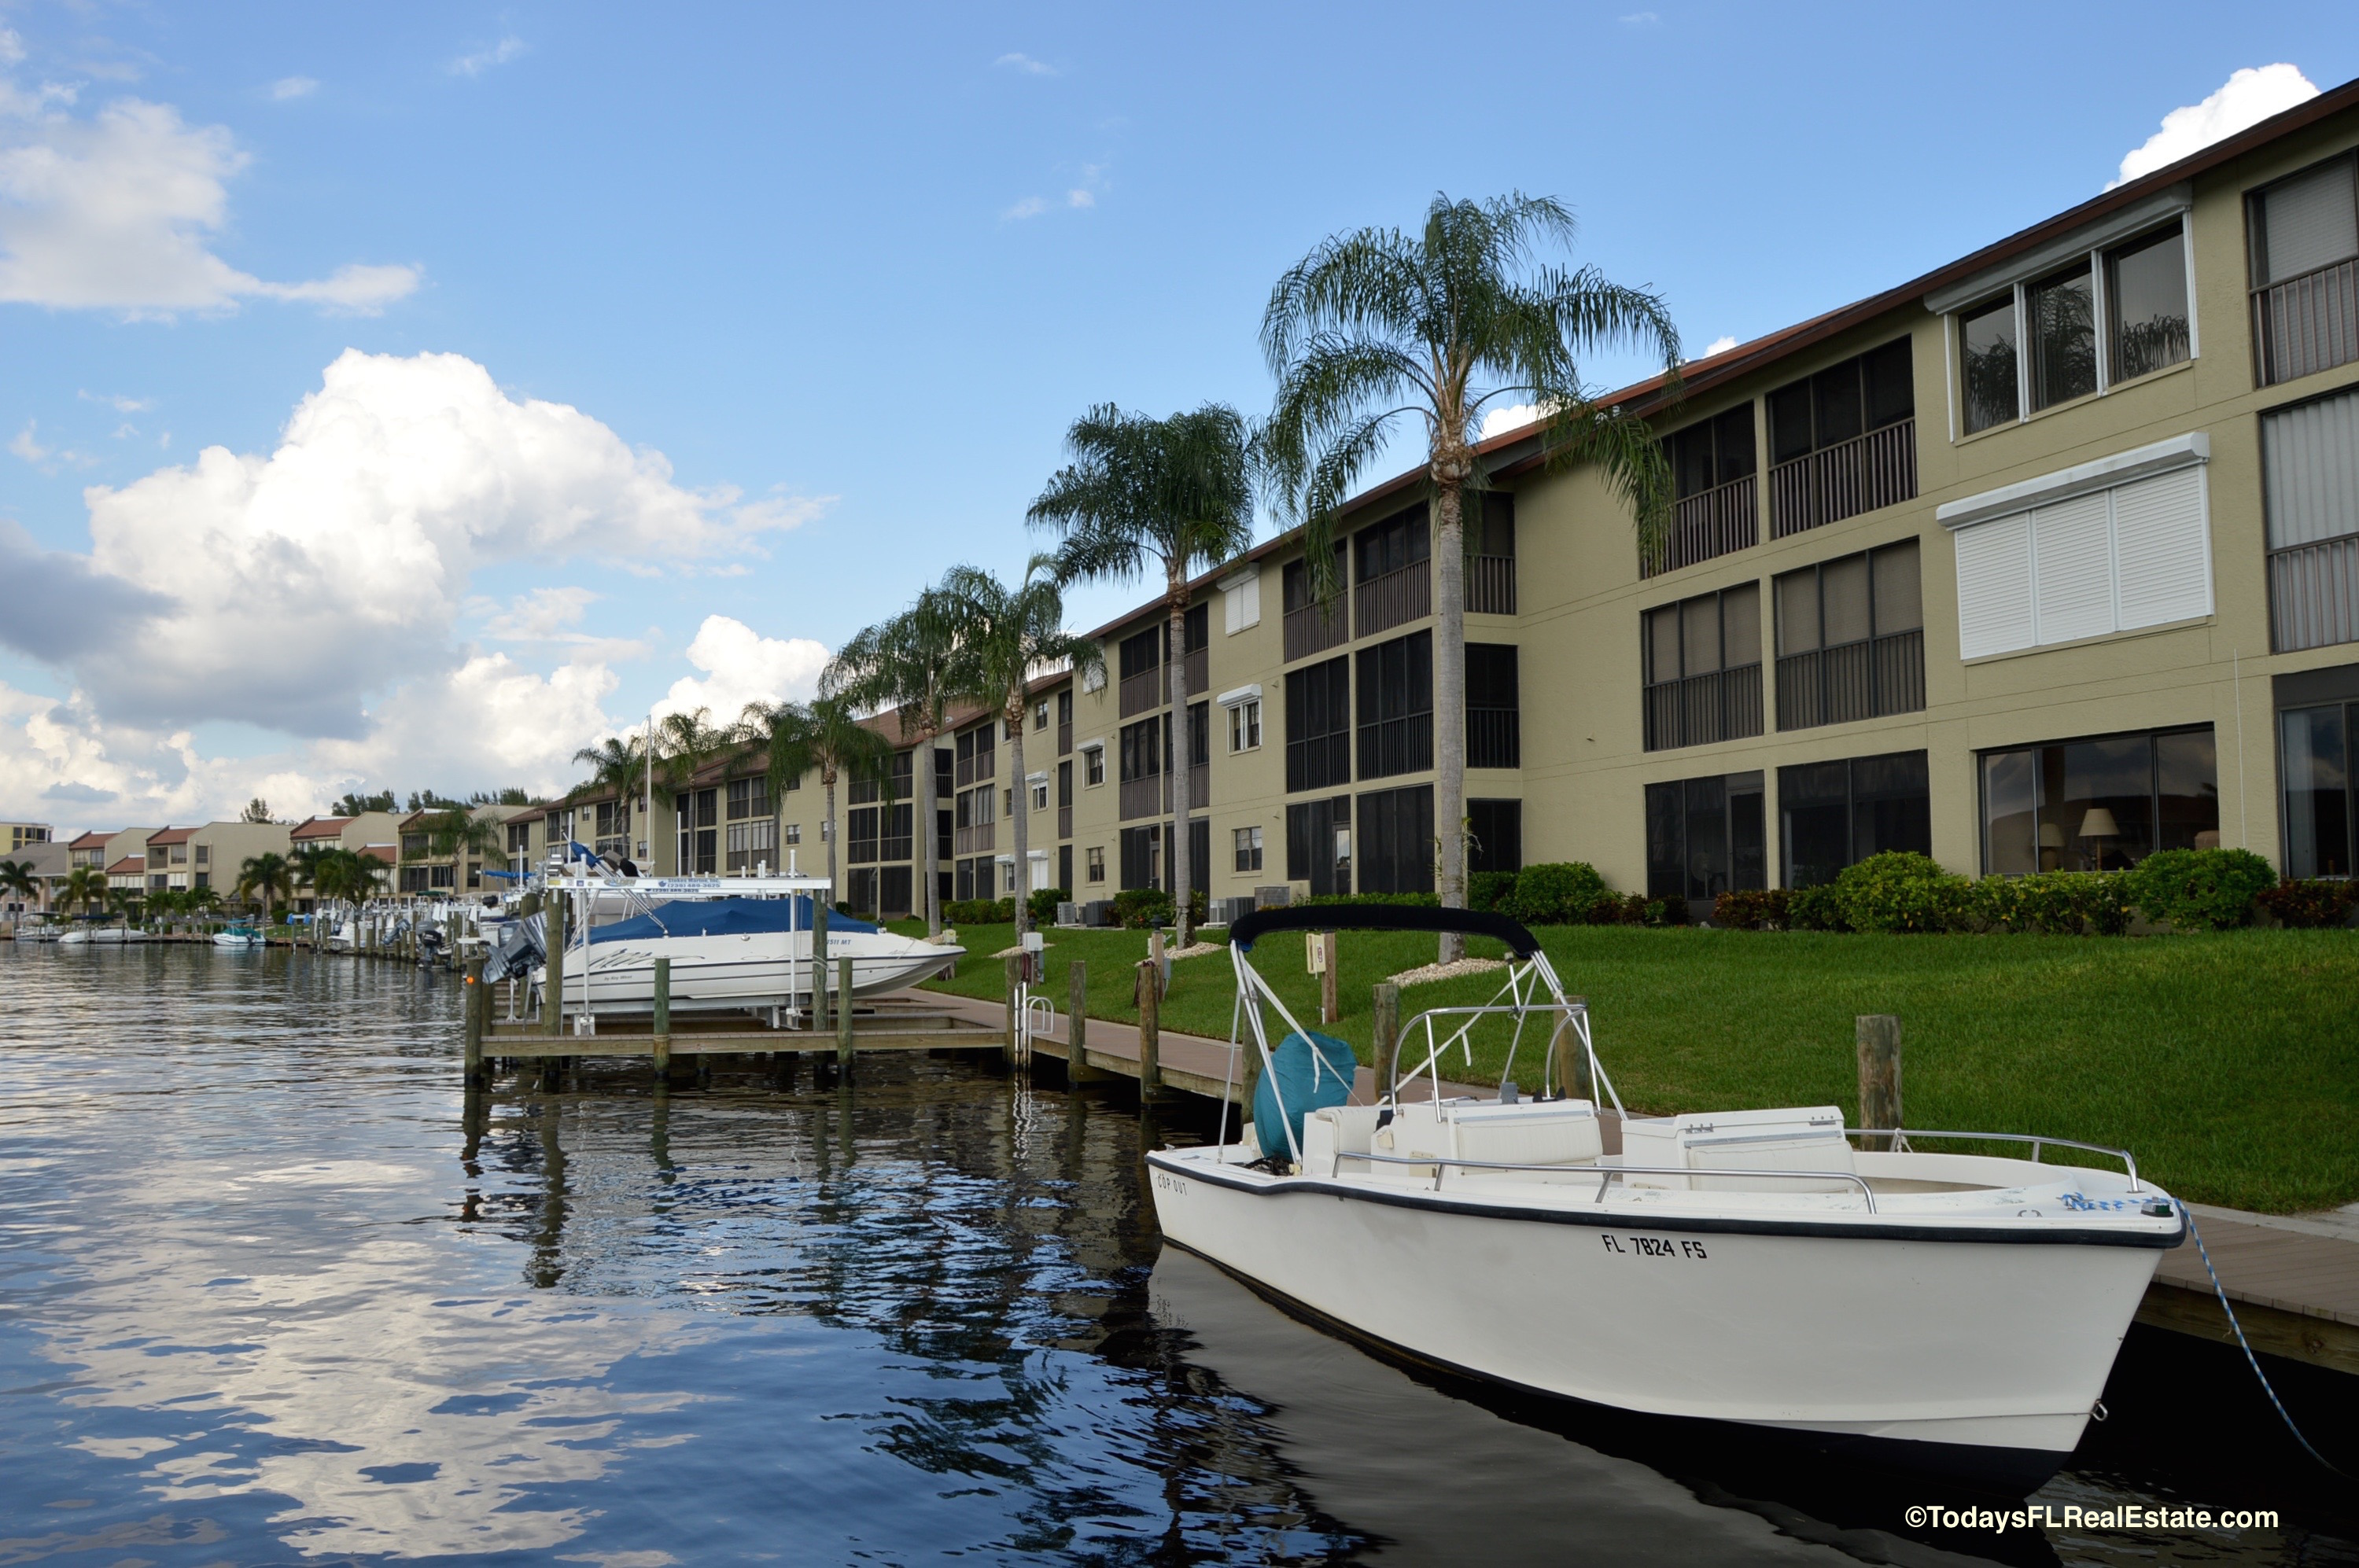 cape coral condos with boat docks, boating communities cape coral, waterfront properties cape coral, low rise waterfront condos